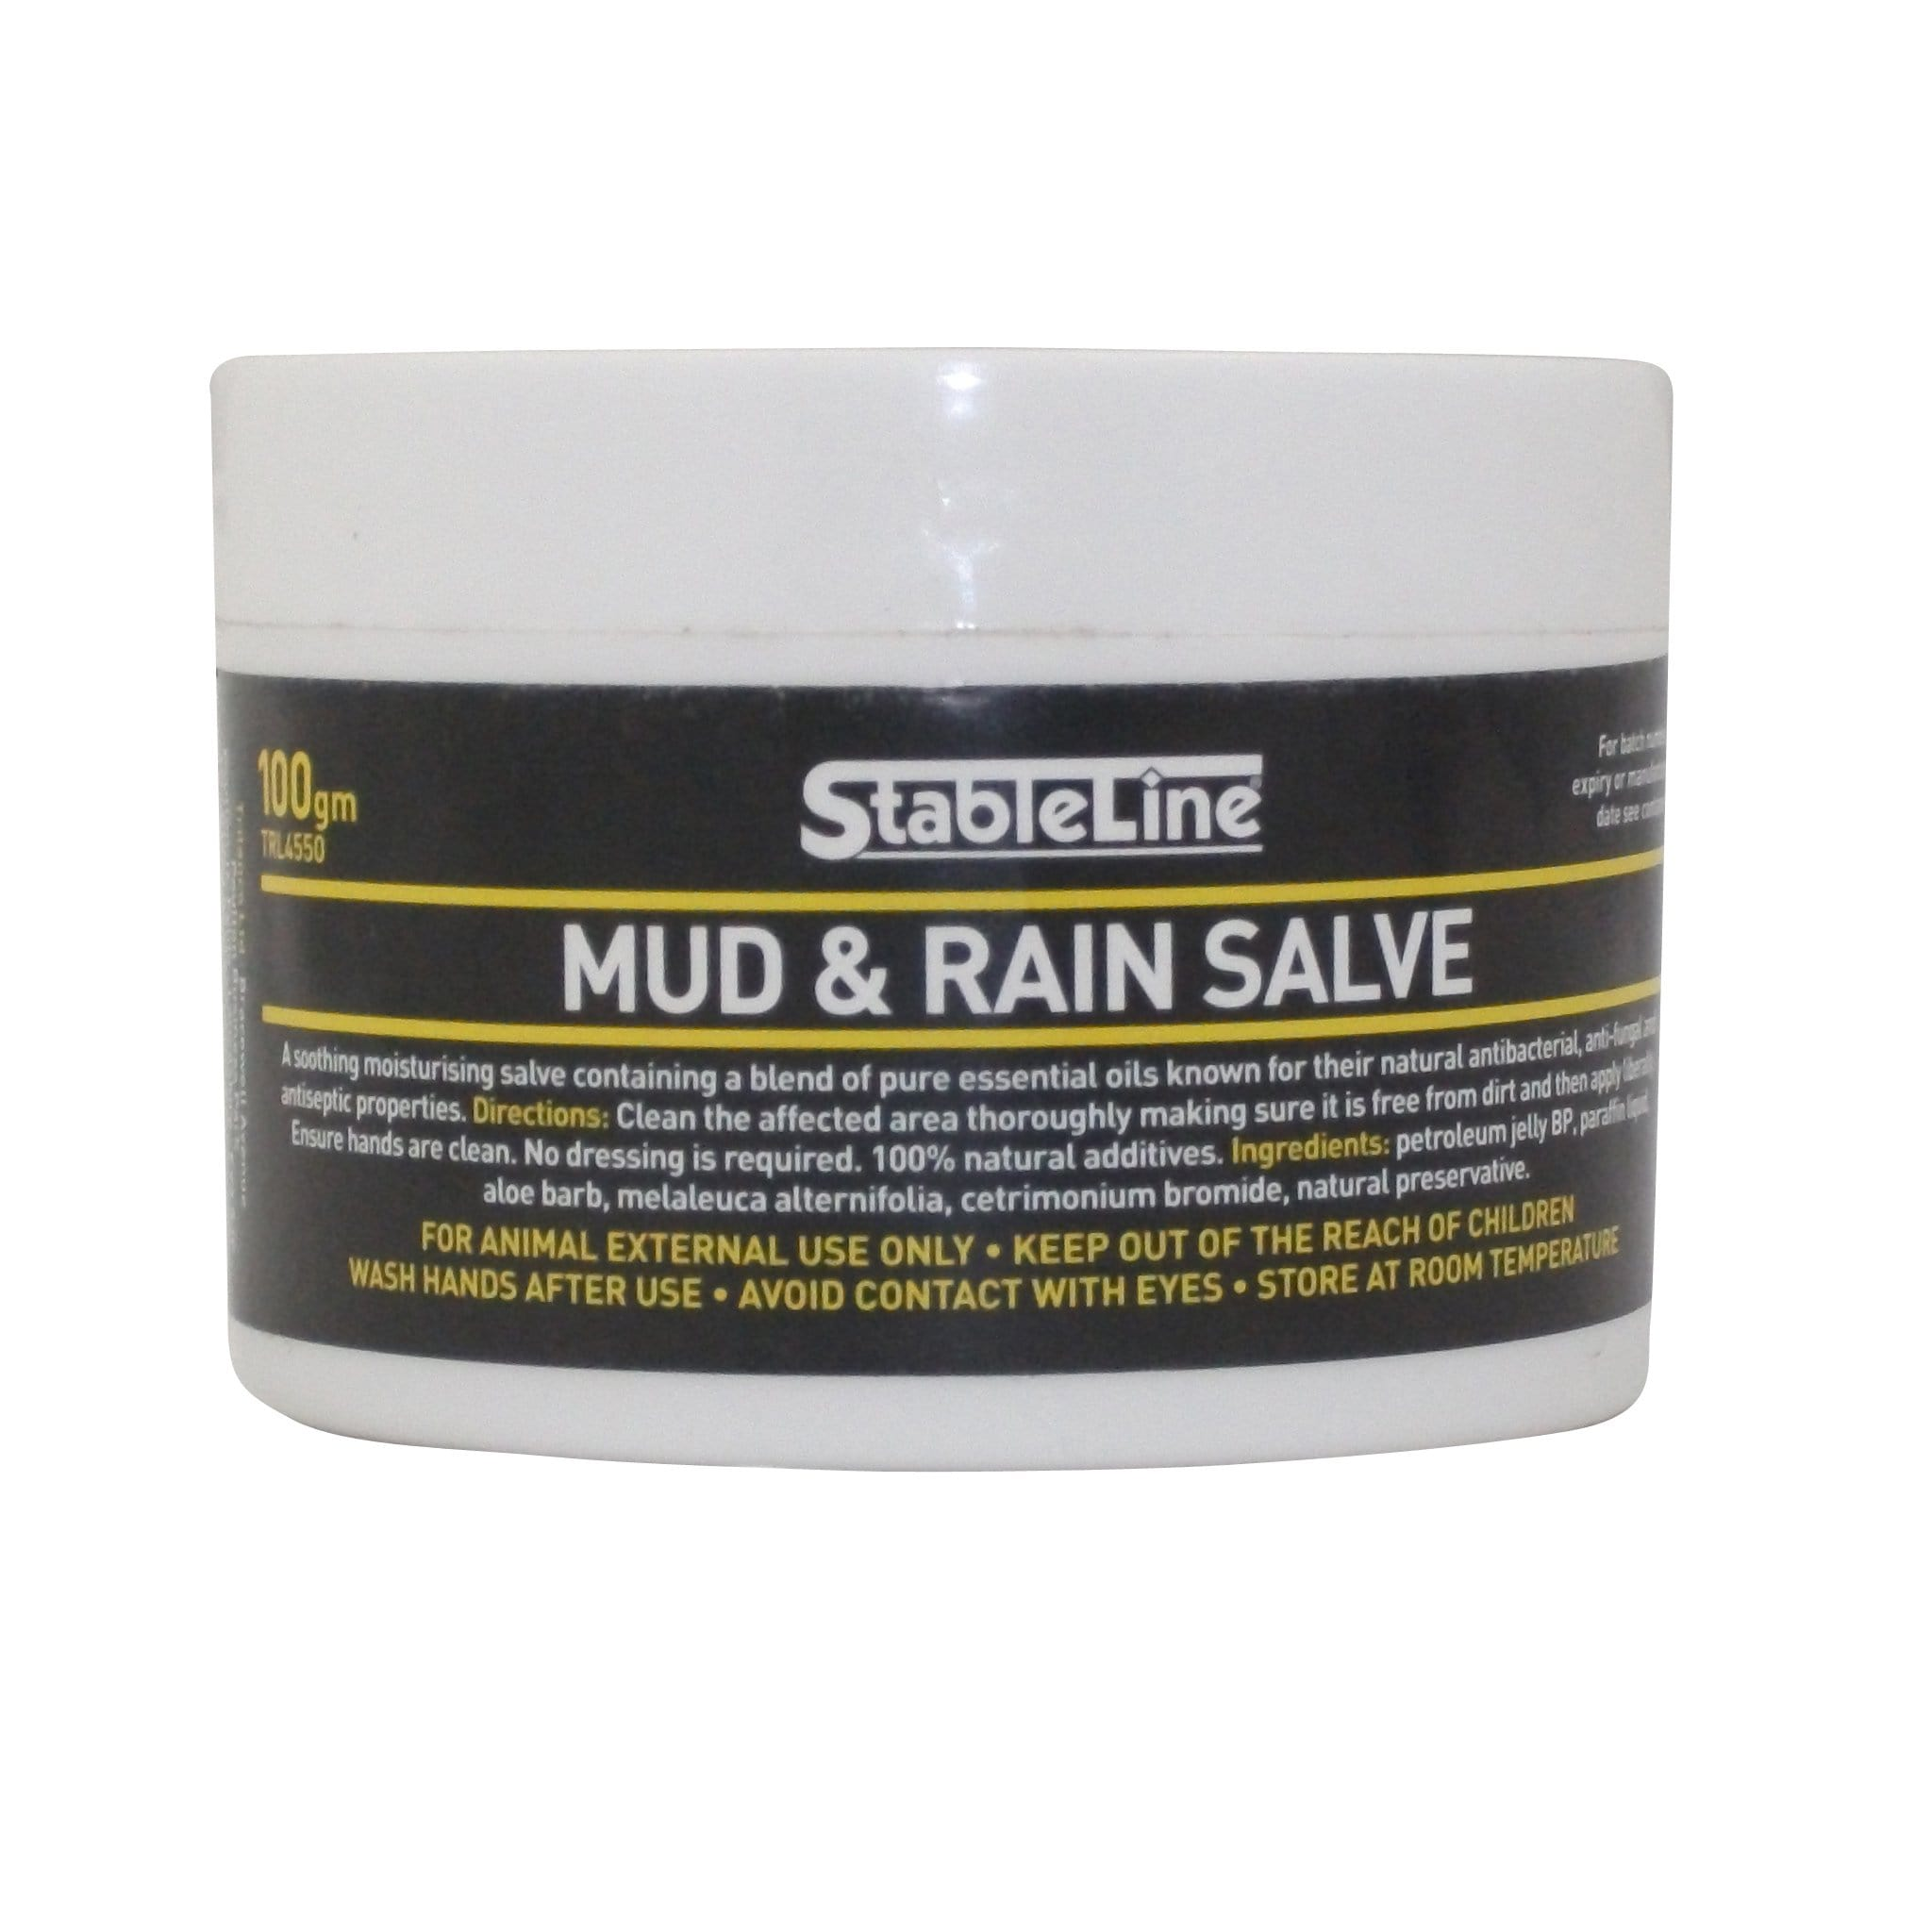 Stableline Mud and Rain Salve TRL4550